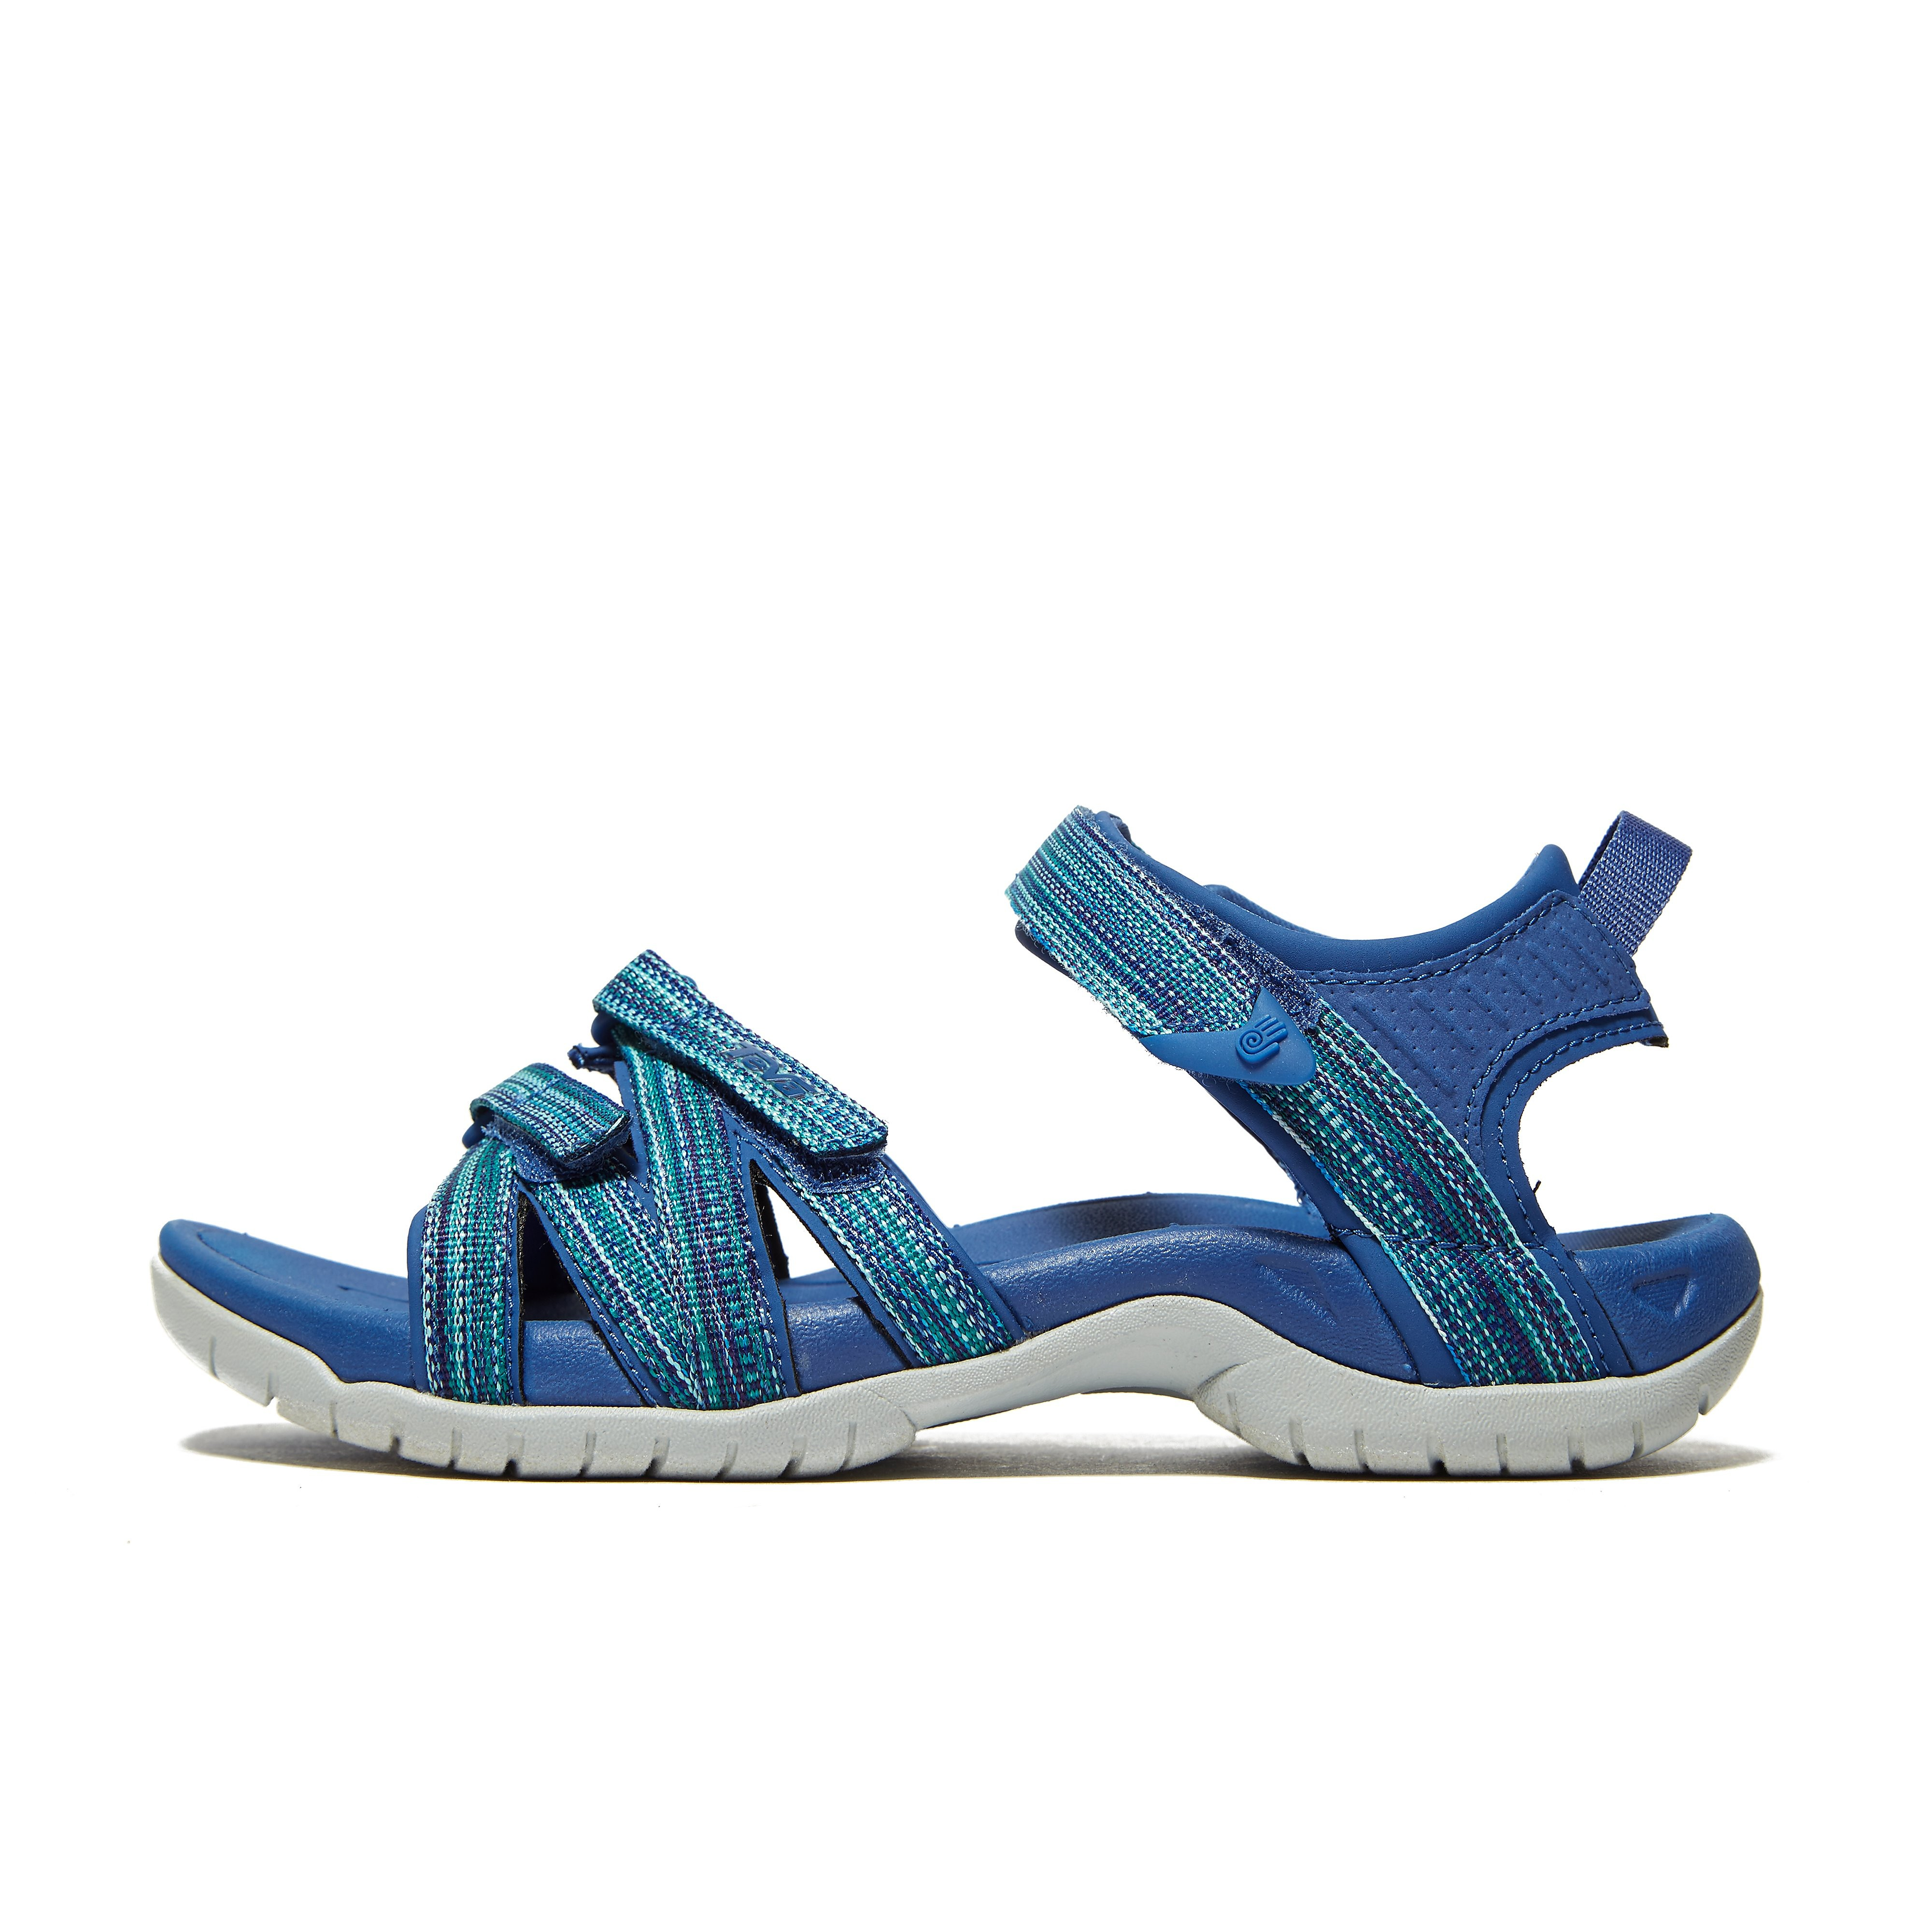 Teva Tirra Women's Walking Sandal